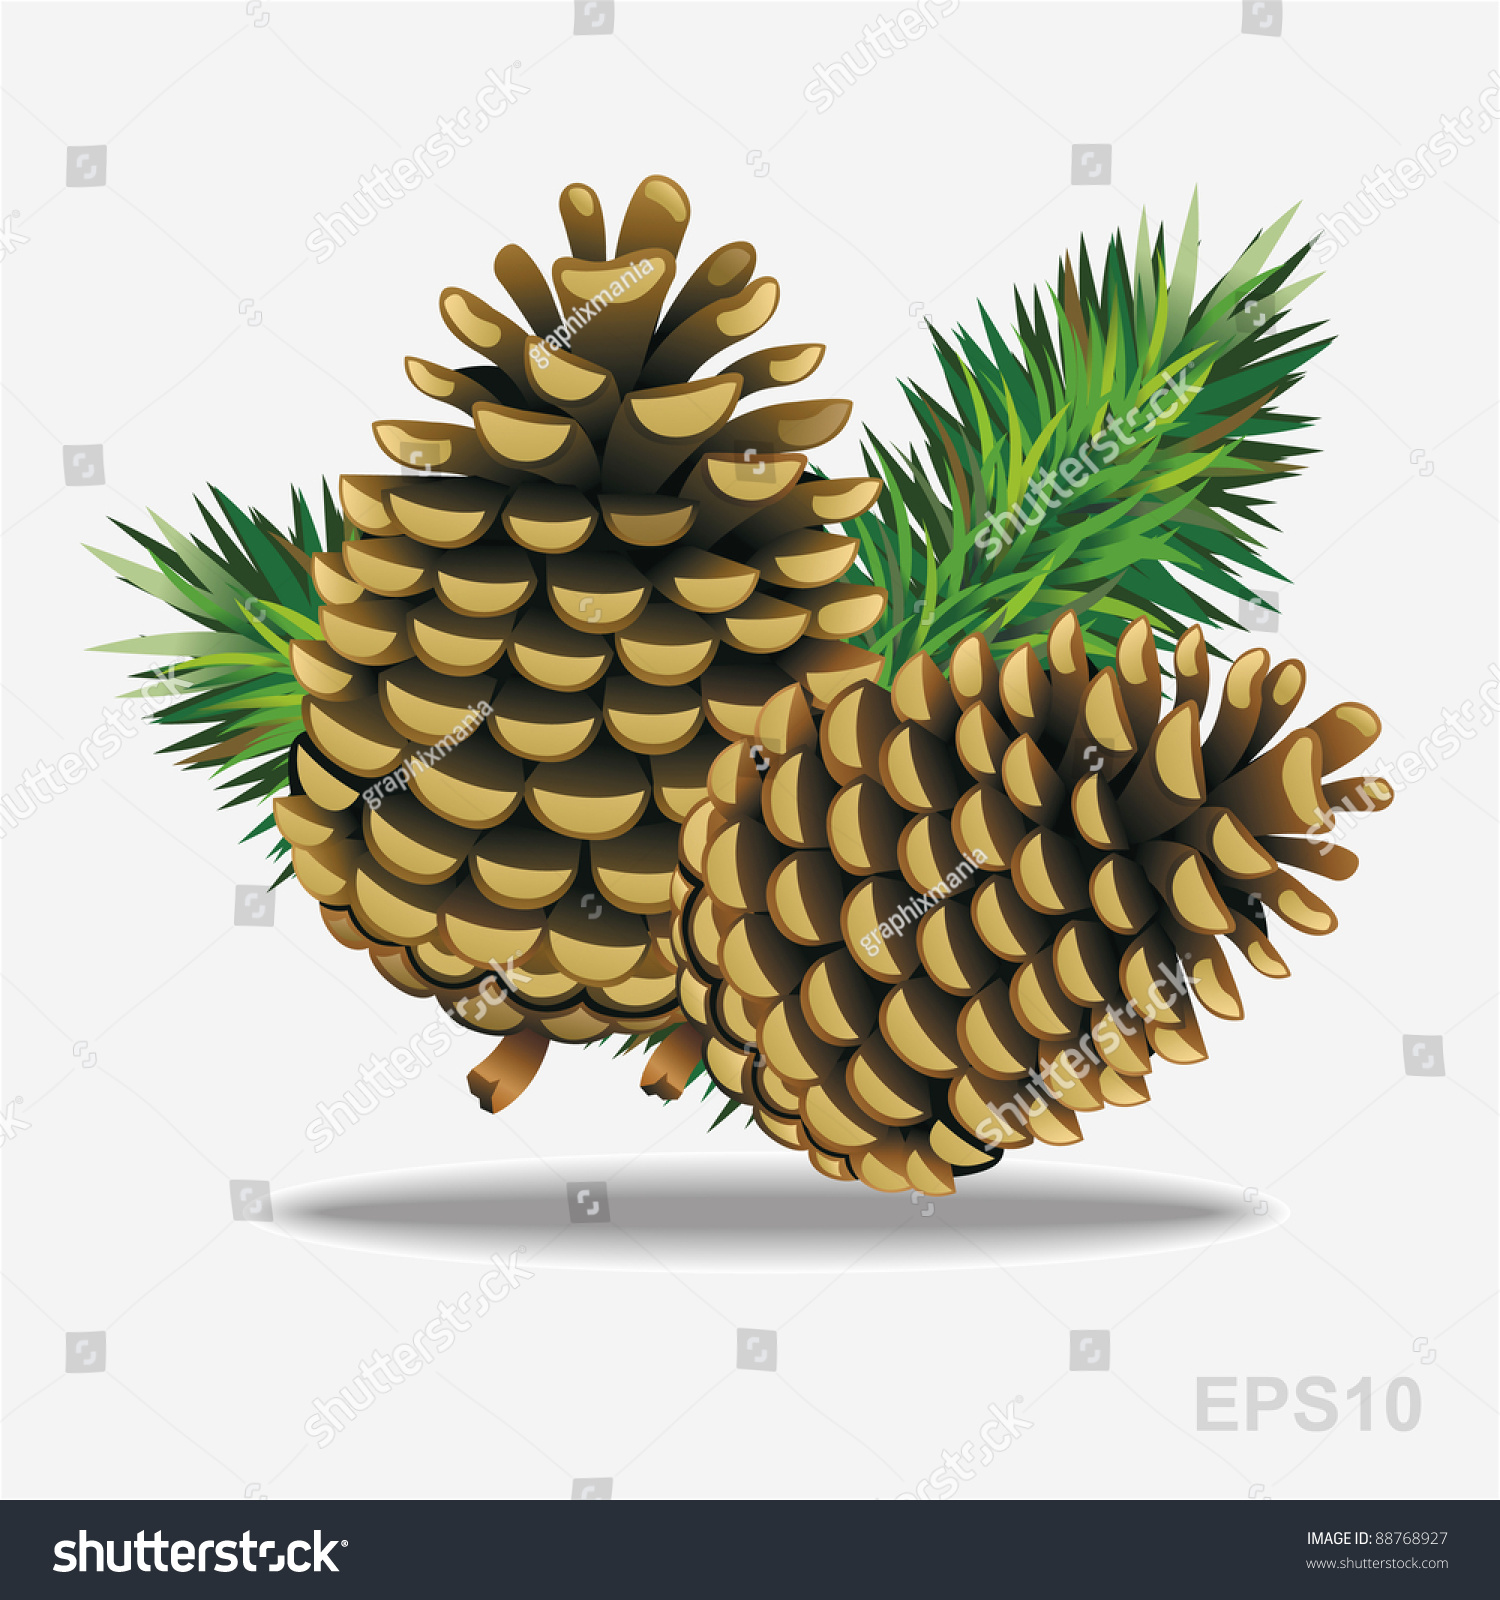 Pine Cone Illustration Pine Cones Pine Needle...